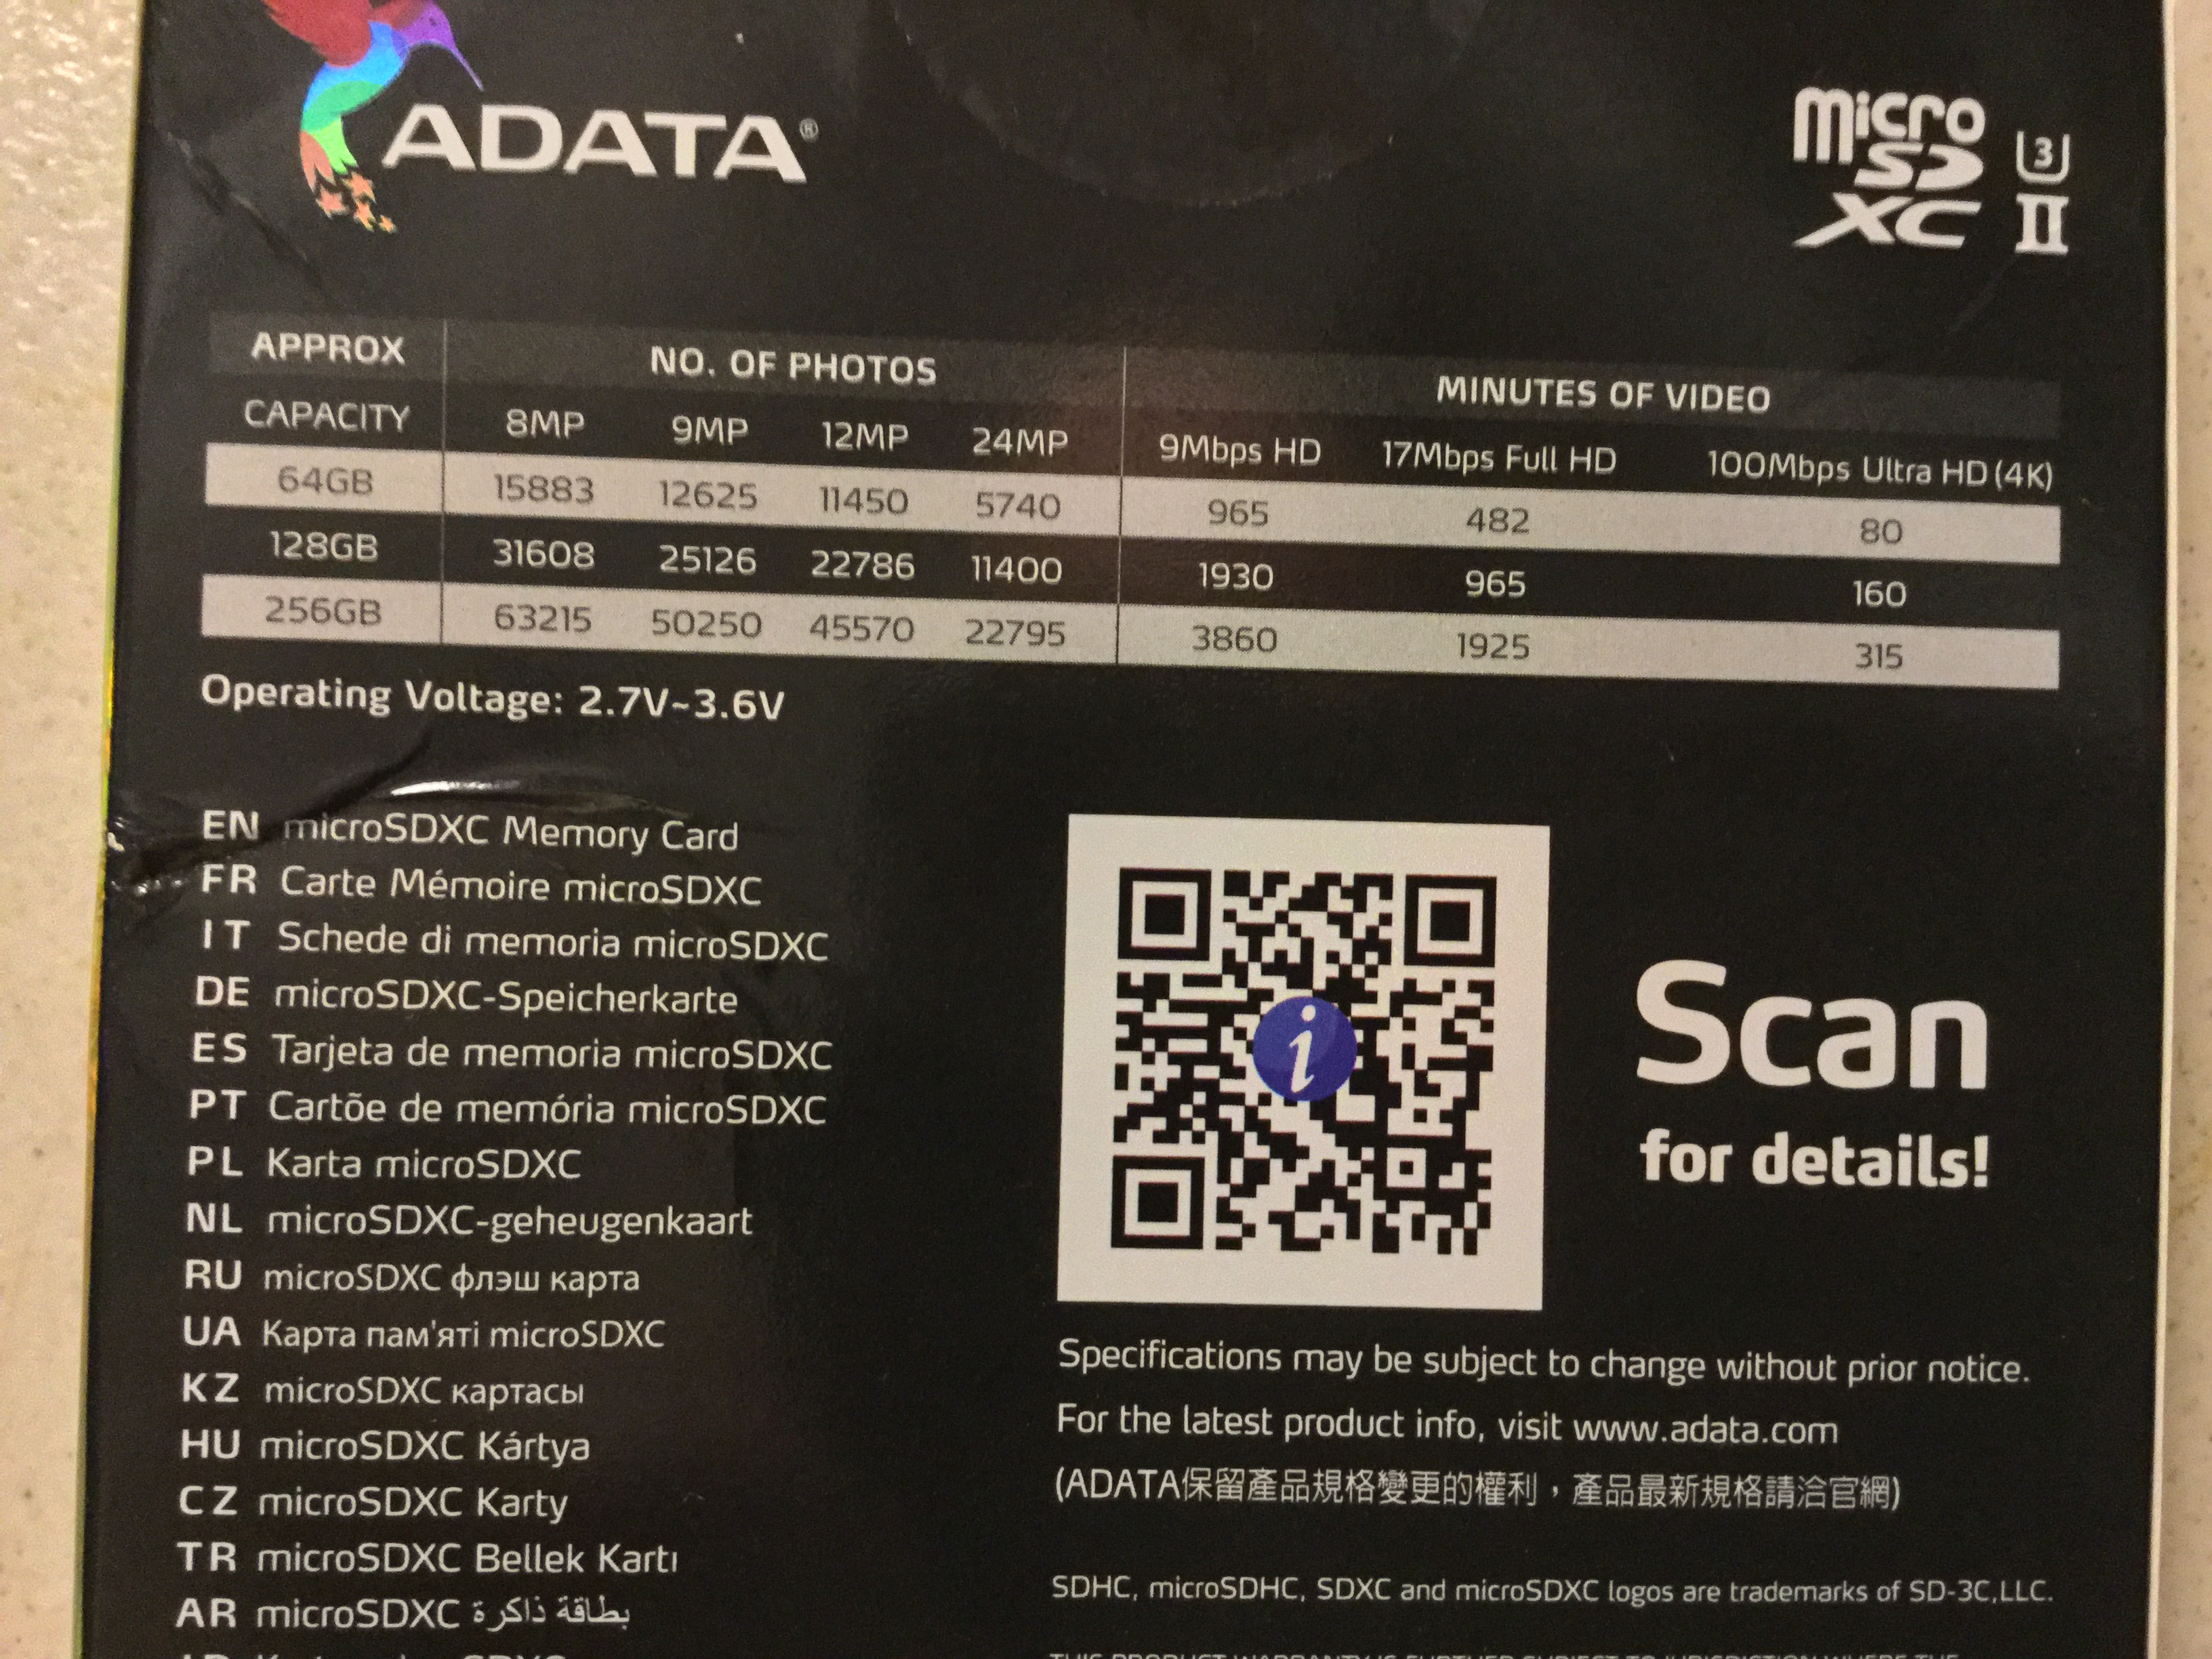 SUPER FAST Micro SD card  Check out the specs photo  !!   DJI